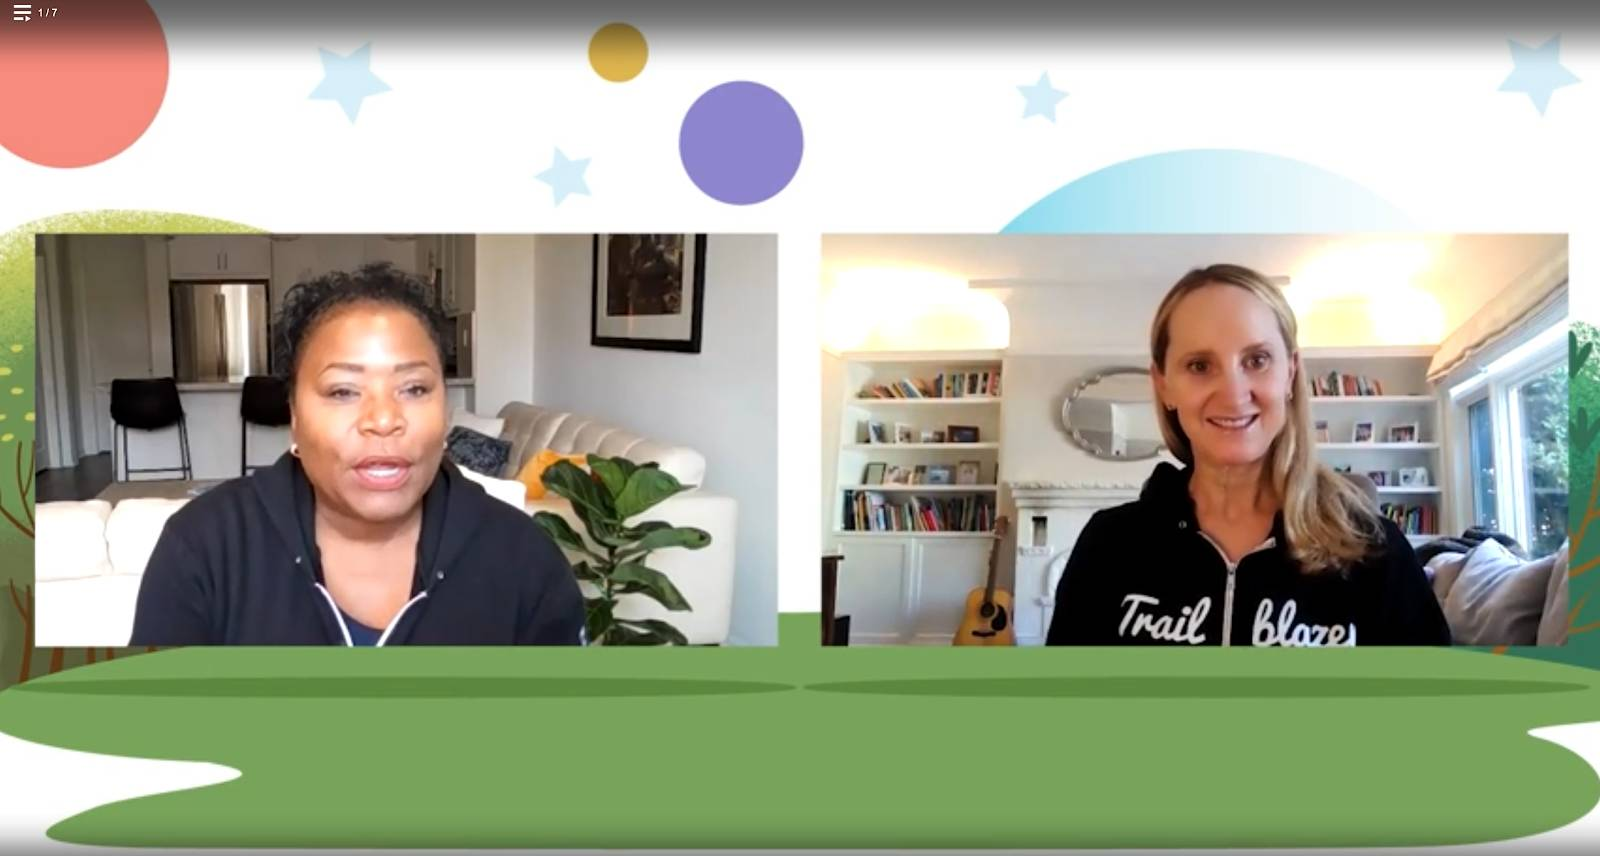 Two women featured split screen with a Trailhead inspired background, one woman is smiling and the other one is talking